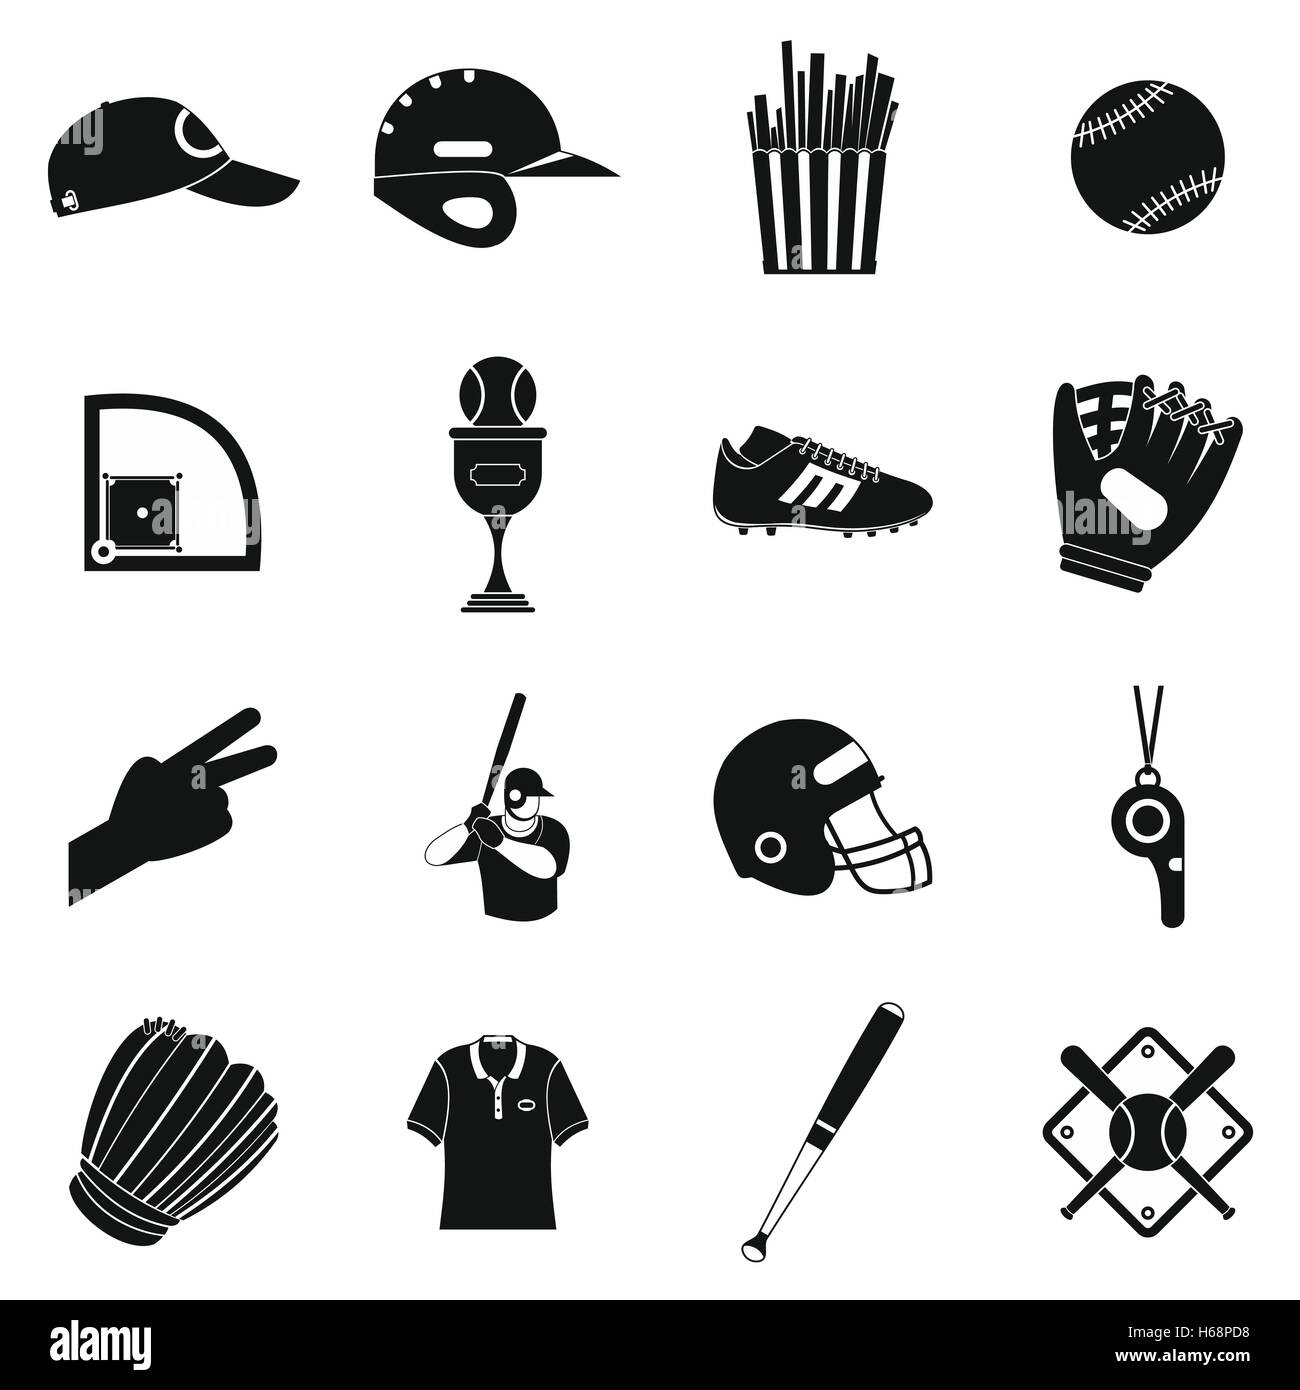 American football black simple icons - Stock Image